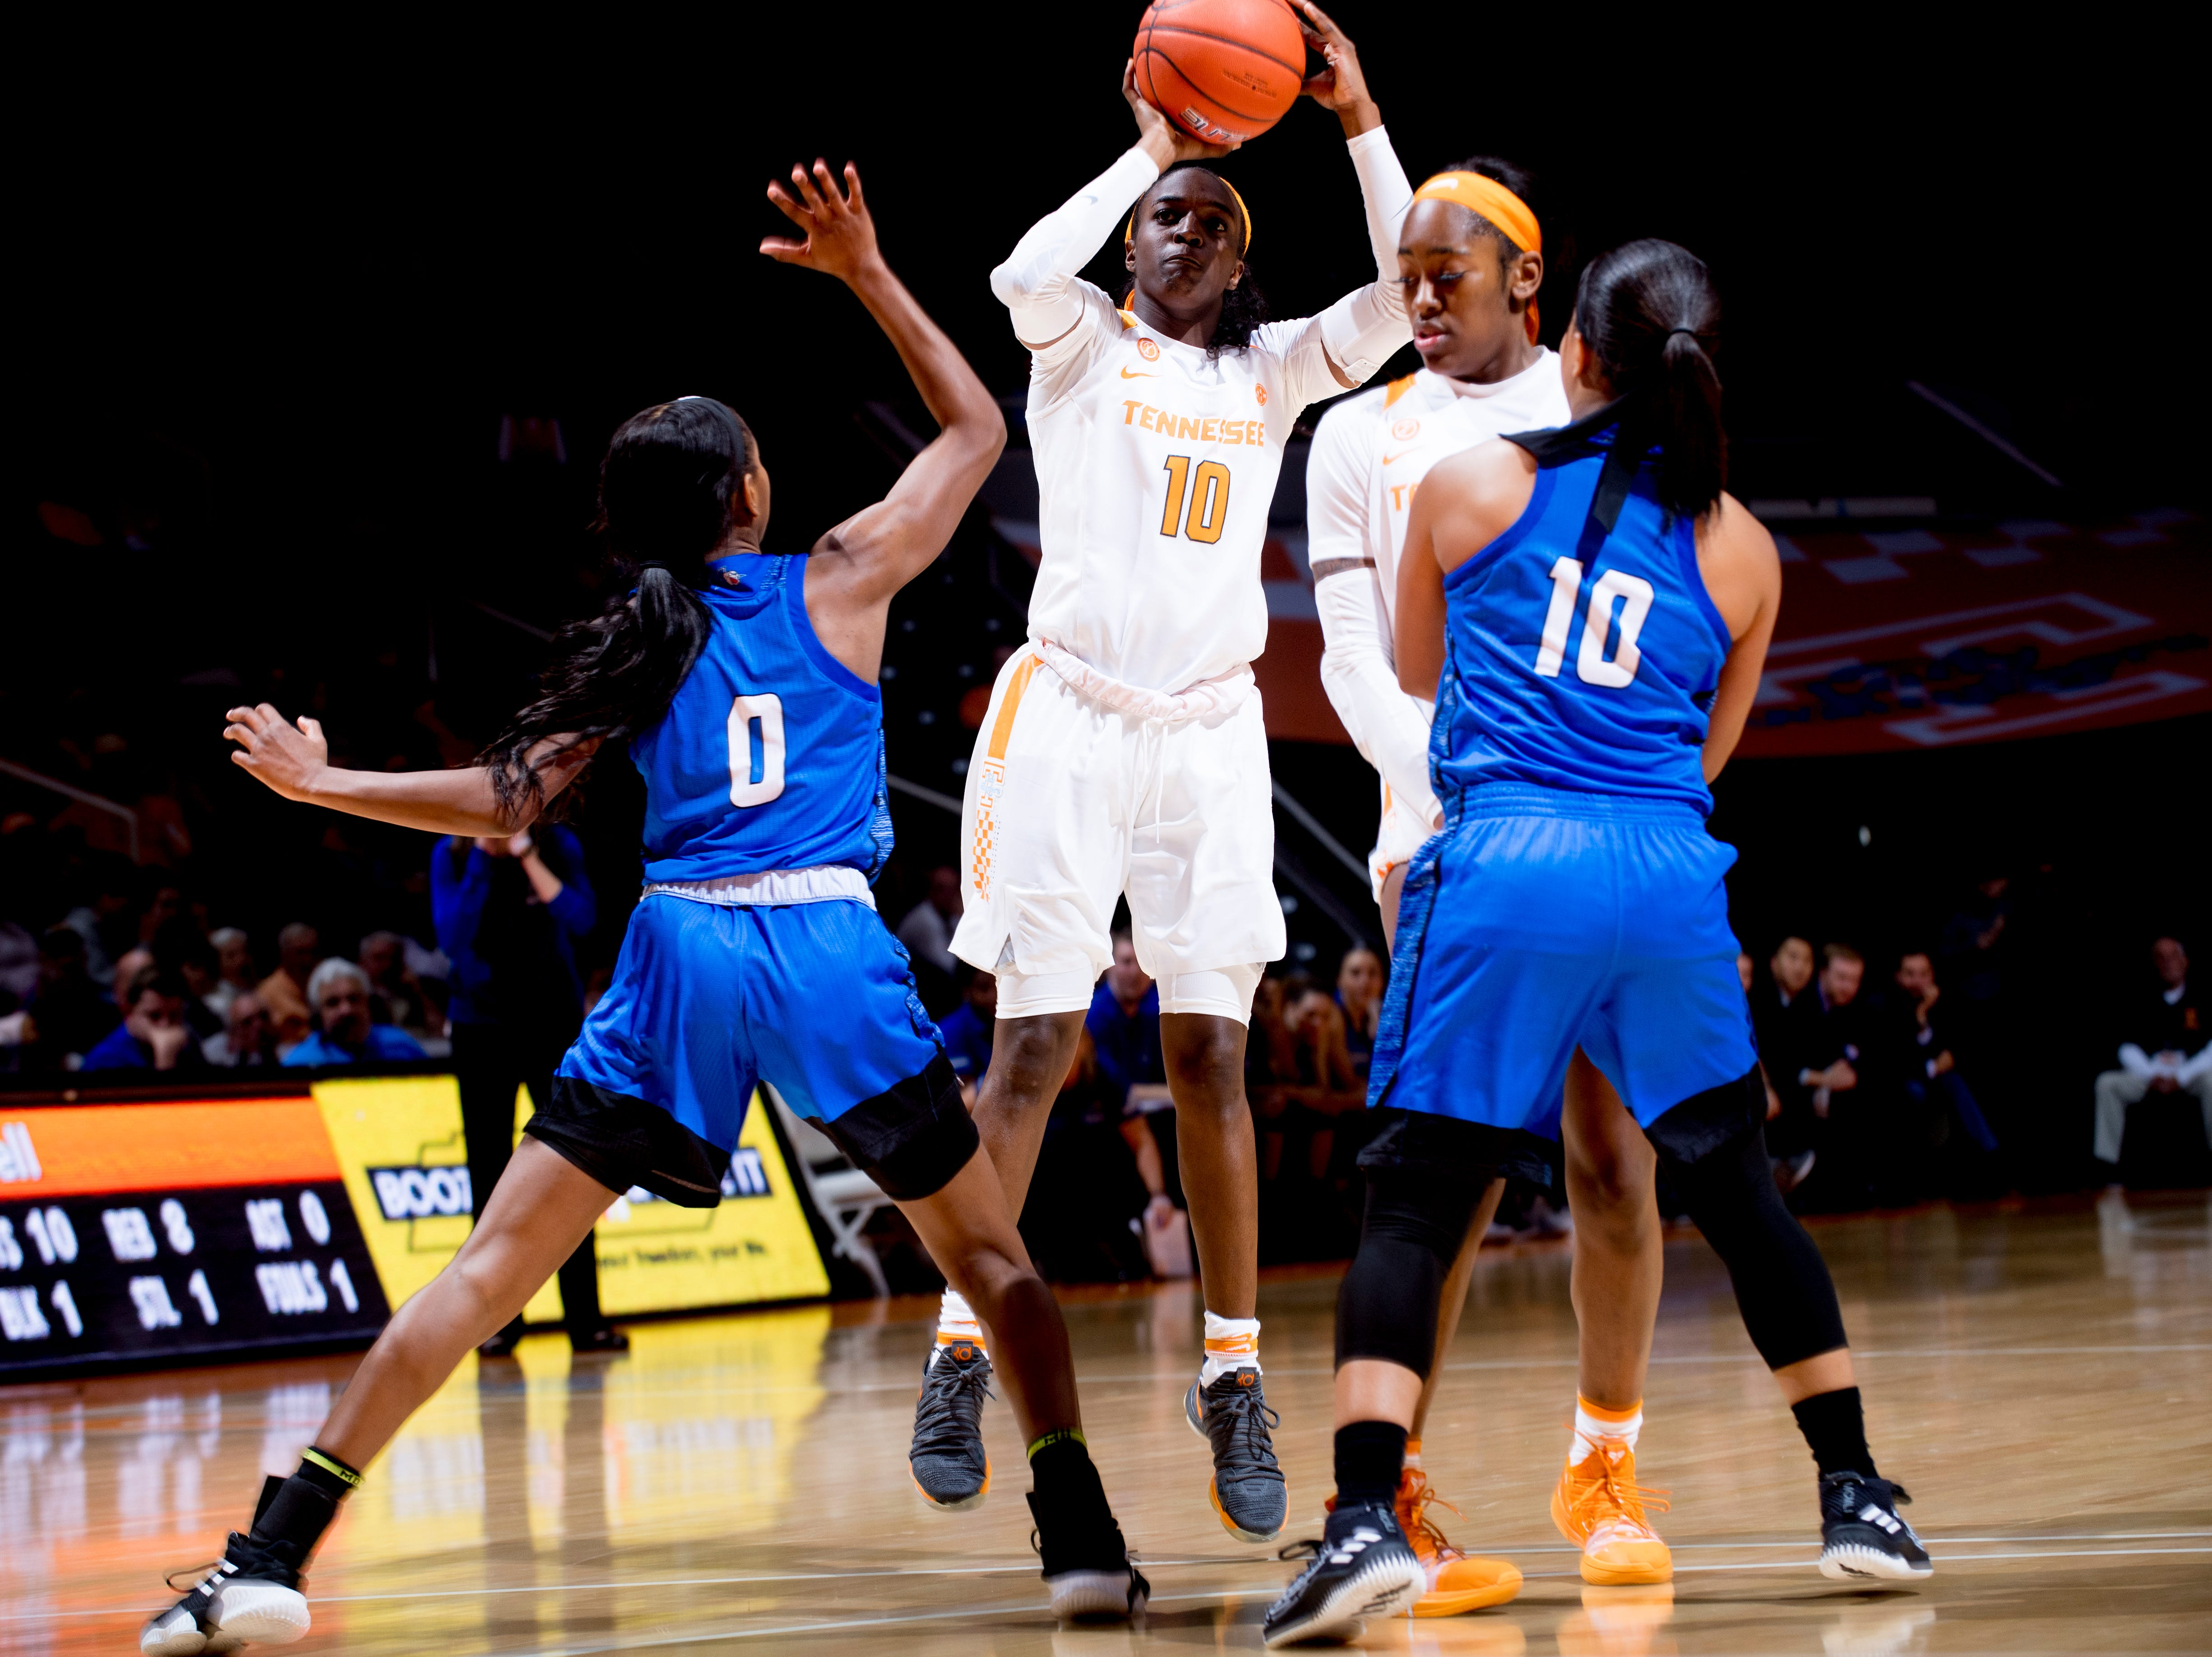 Tennessee guard/forward Meme Jackson (10) shoots past UNC Asheville  guard Nadiria Evans (0) and UNC Asheville  guard Jessica Wall (10) during a game between Tennessee and UNC Asheville at Thompson-Boling Arena in Knoxville, Tennessee on Wednesday, November 14, 2018.